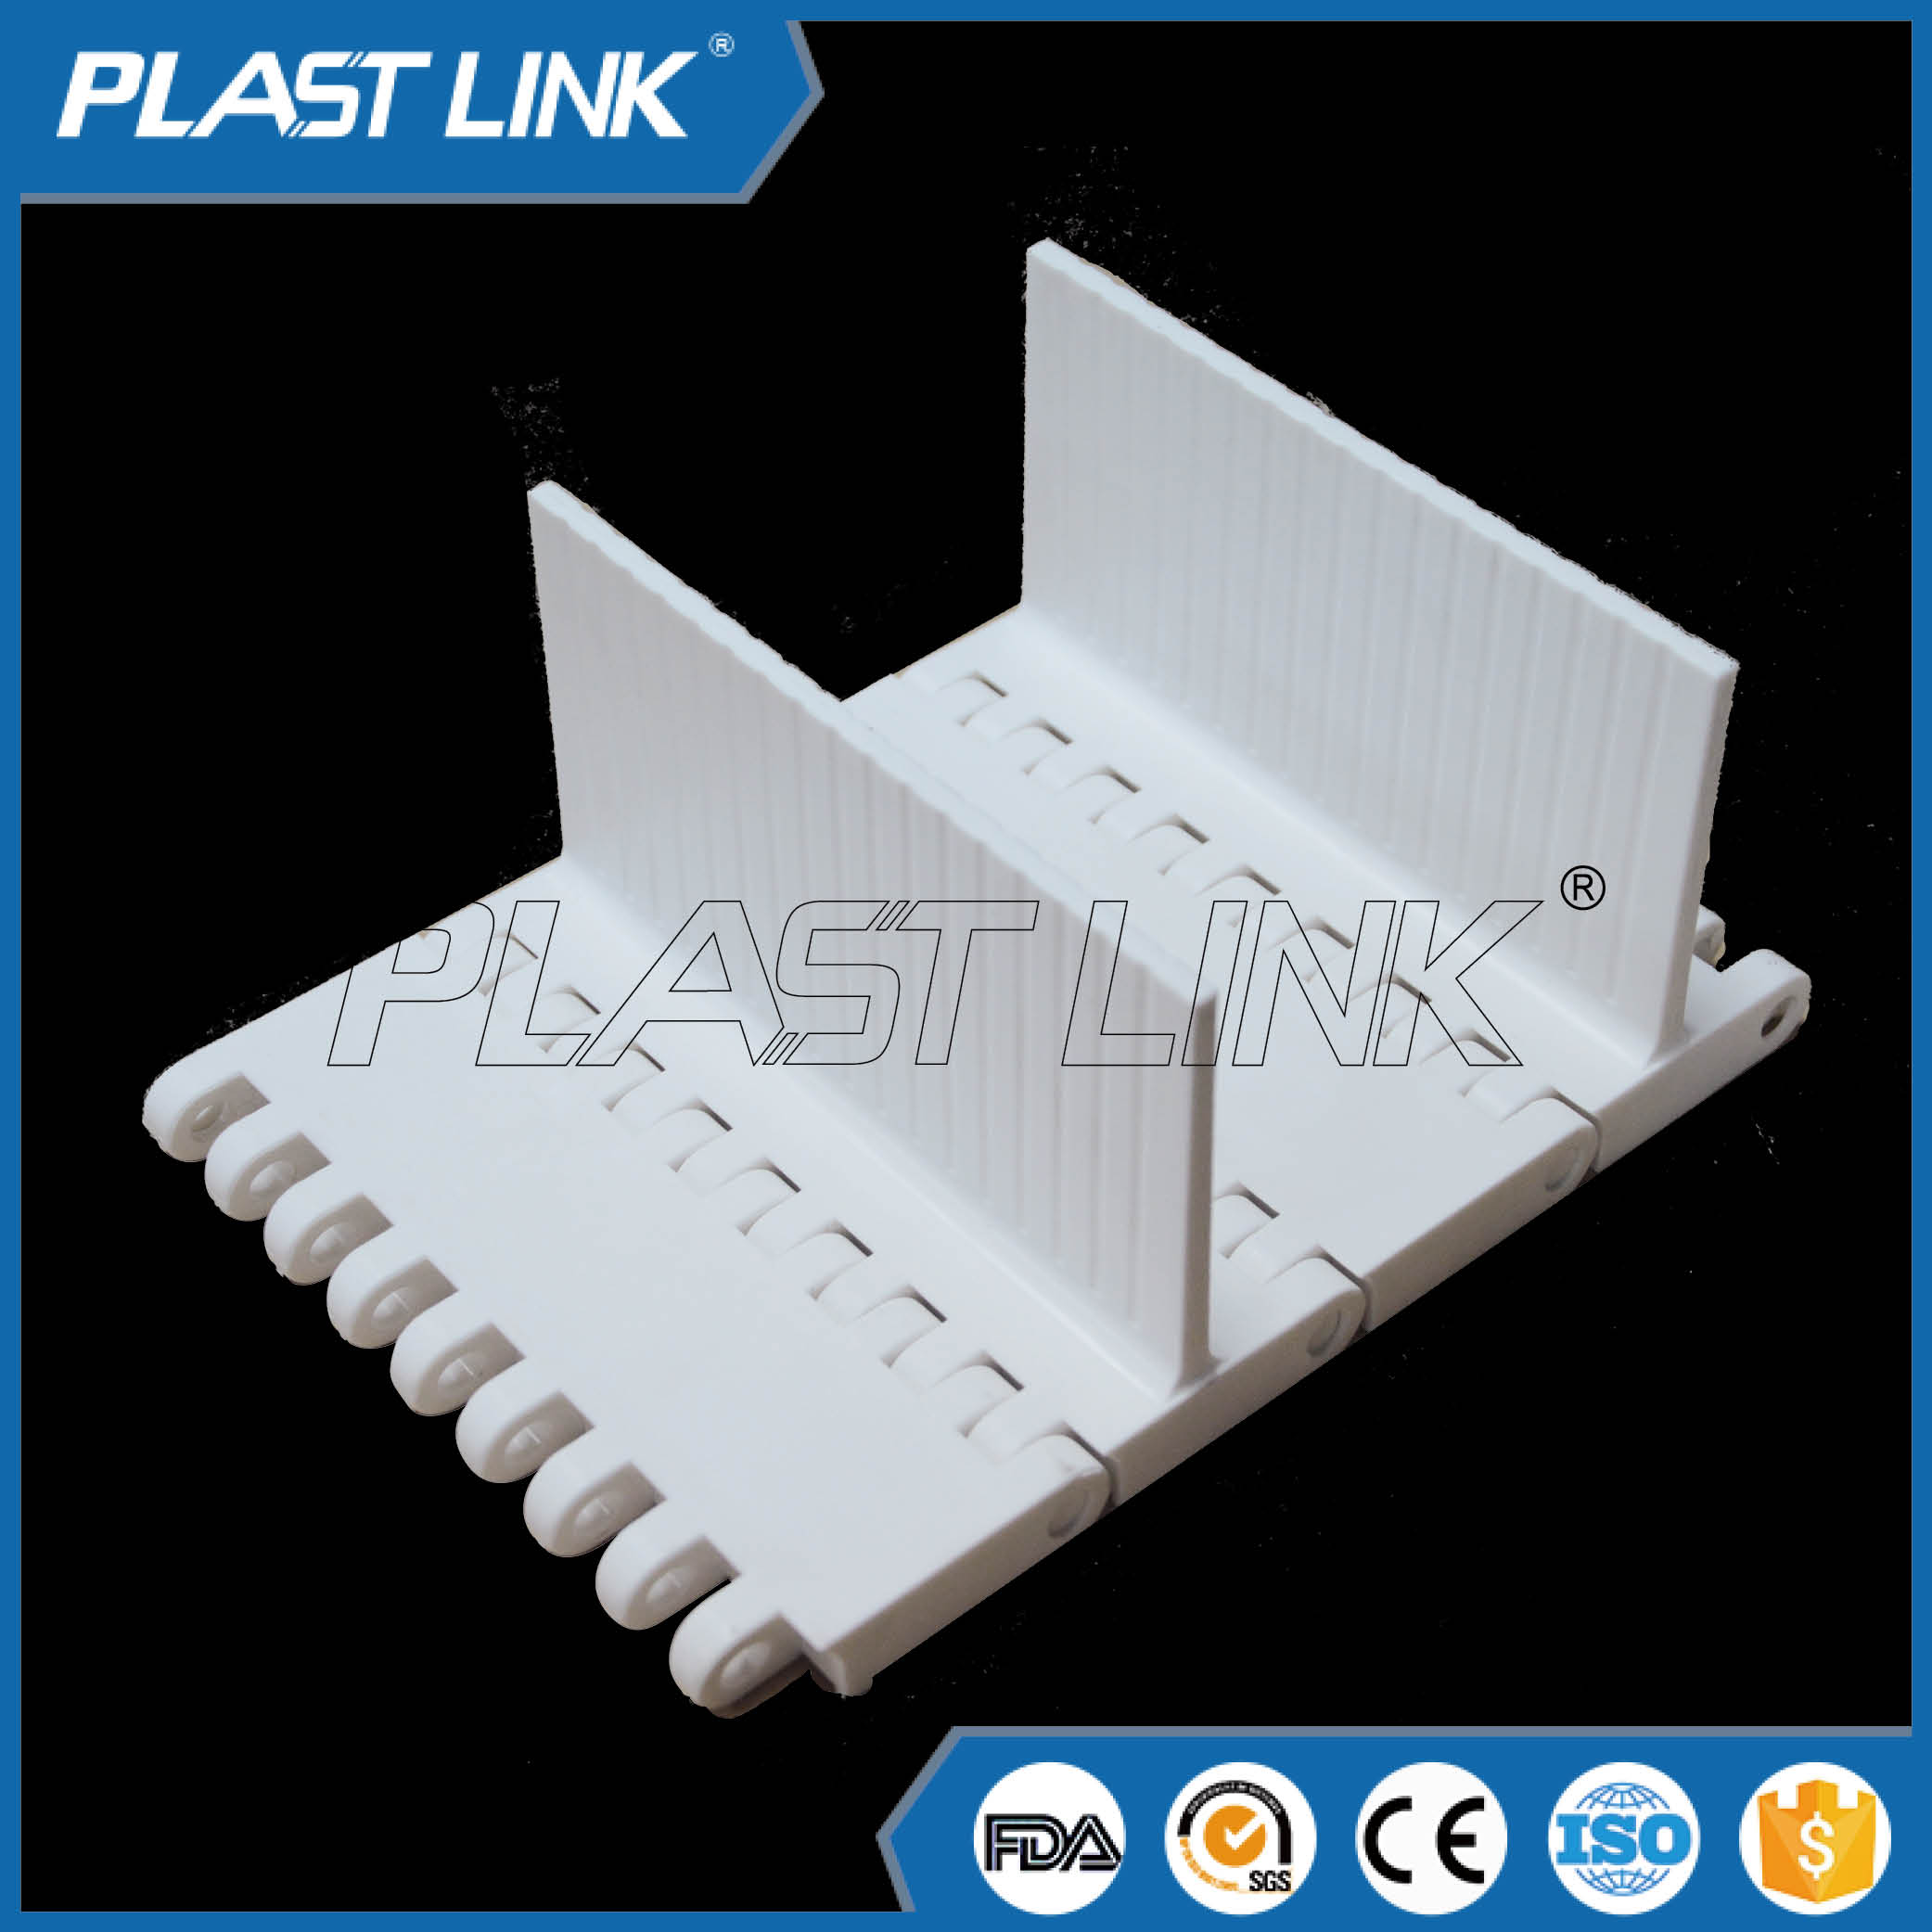 PlastLink OPB modular belt with base flight